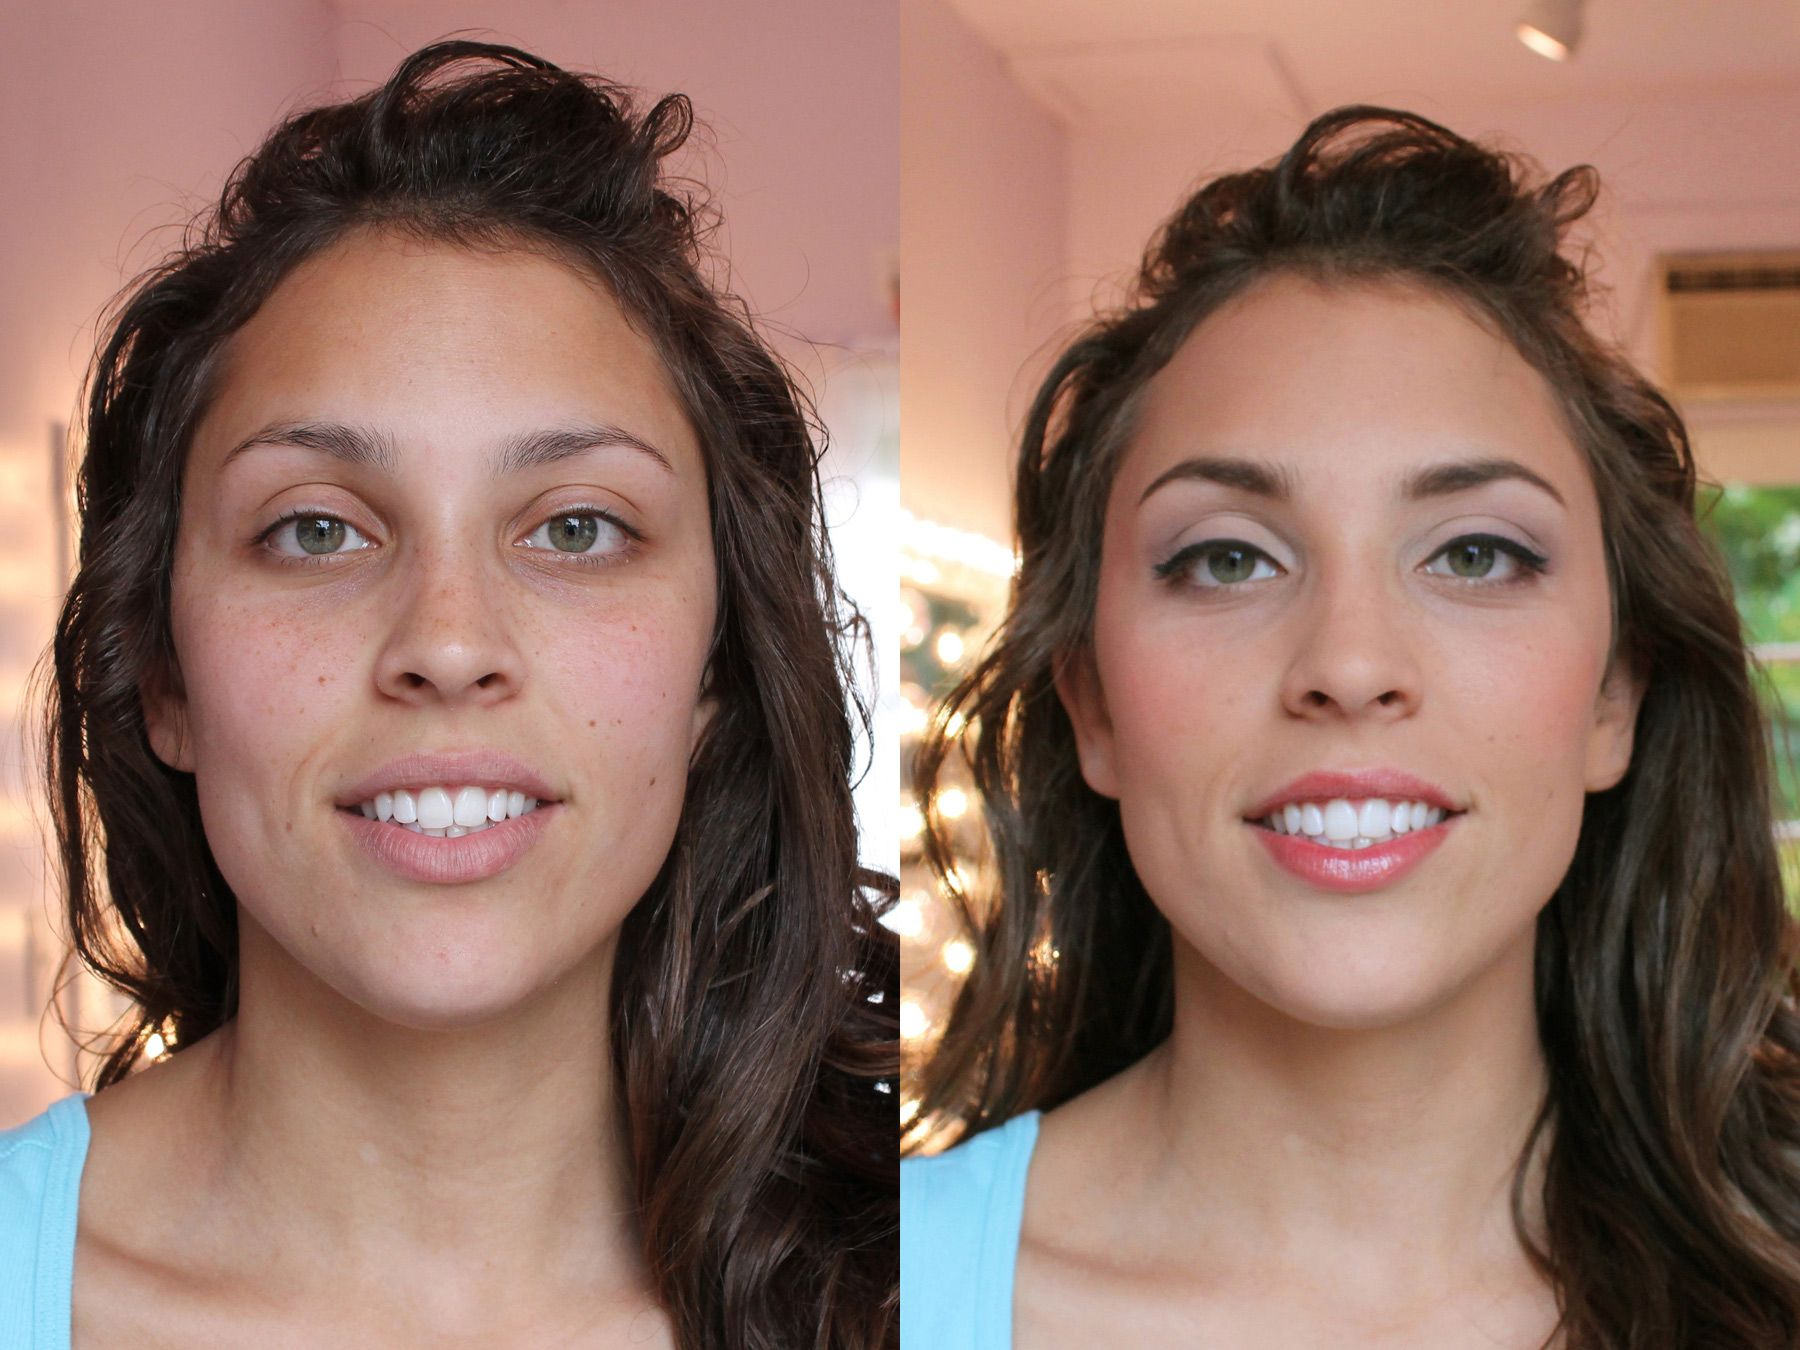 makeup before and after |  airbrush hair design portfolio before